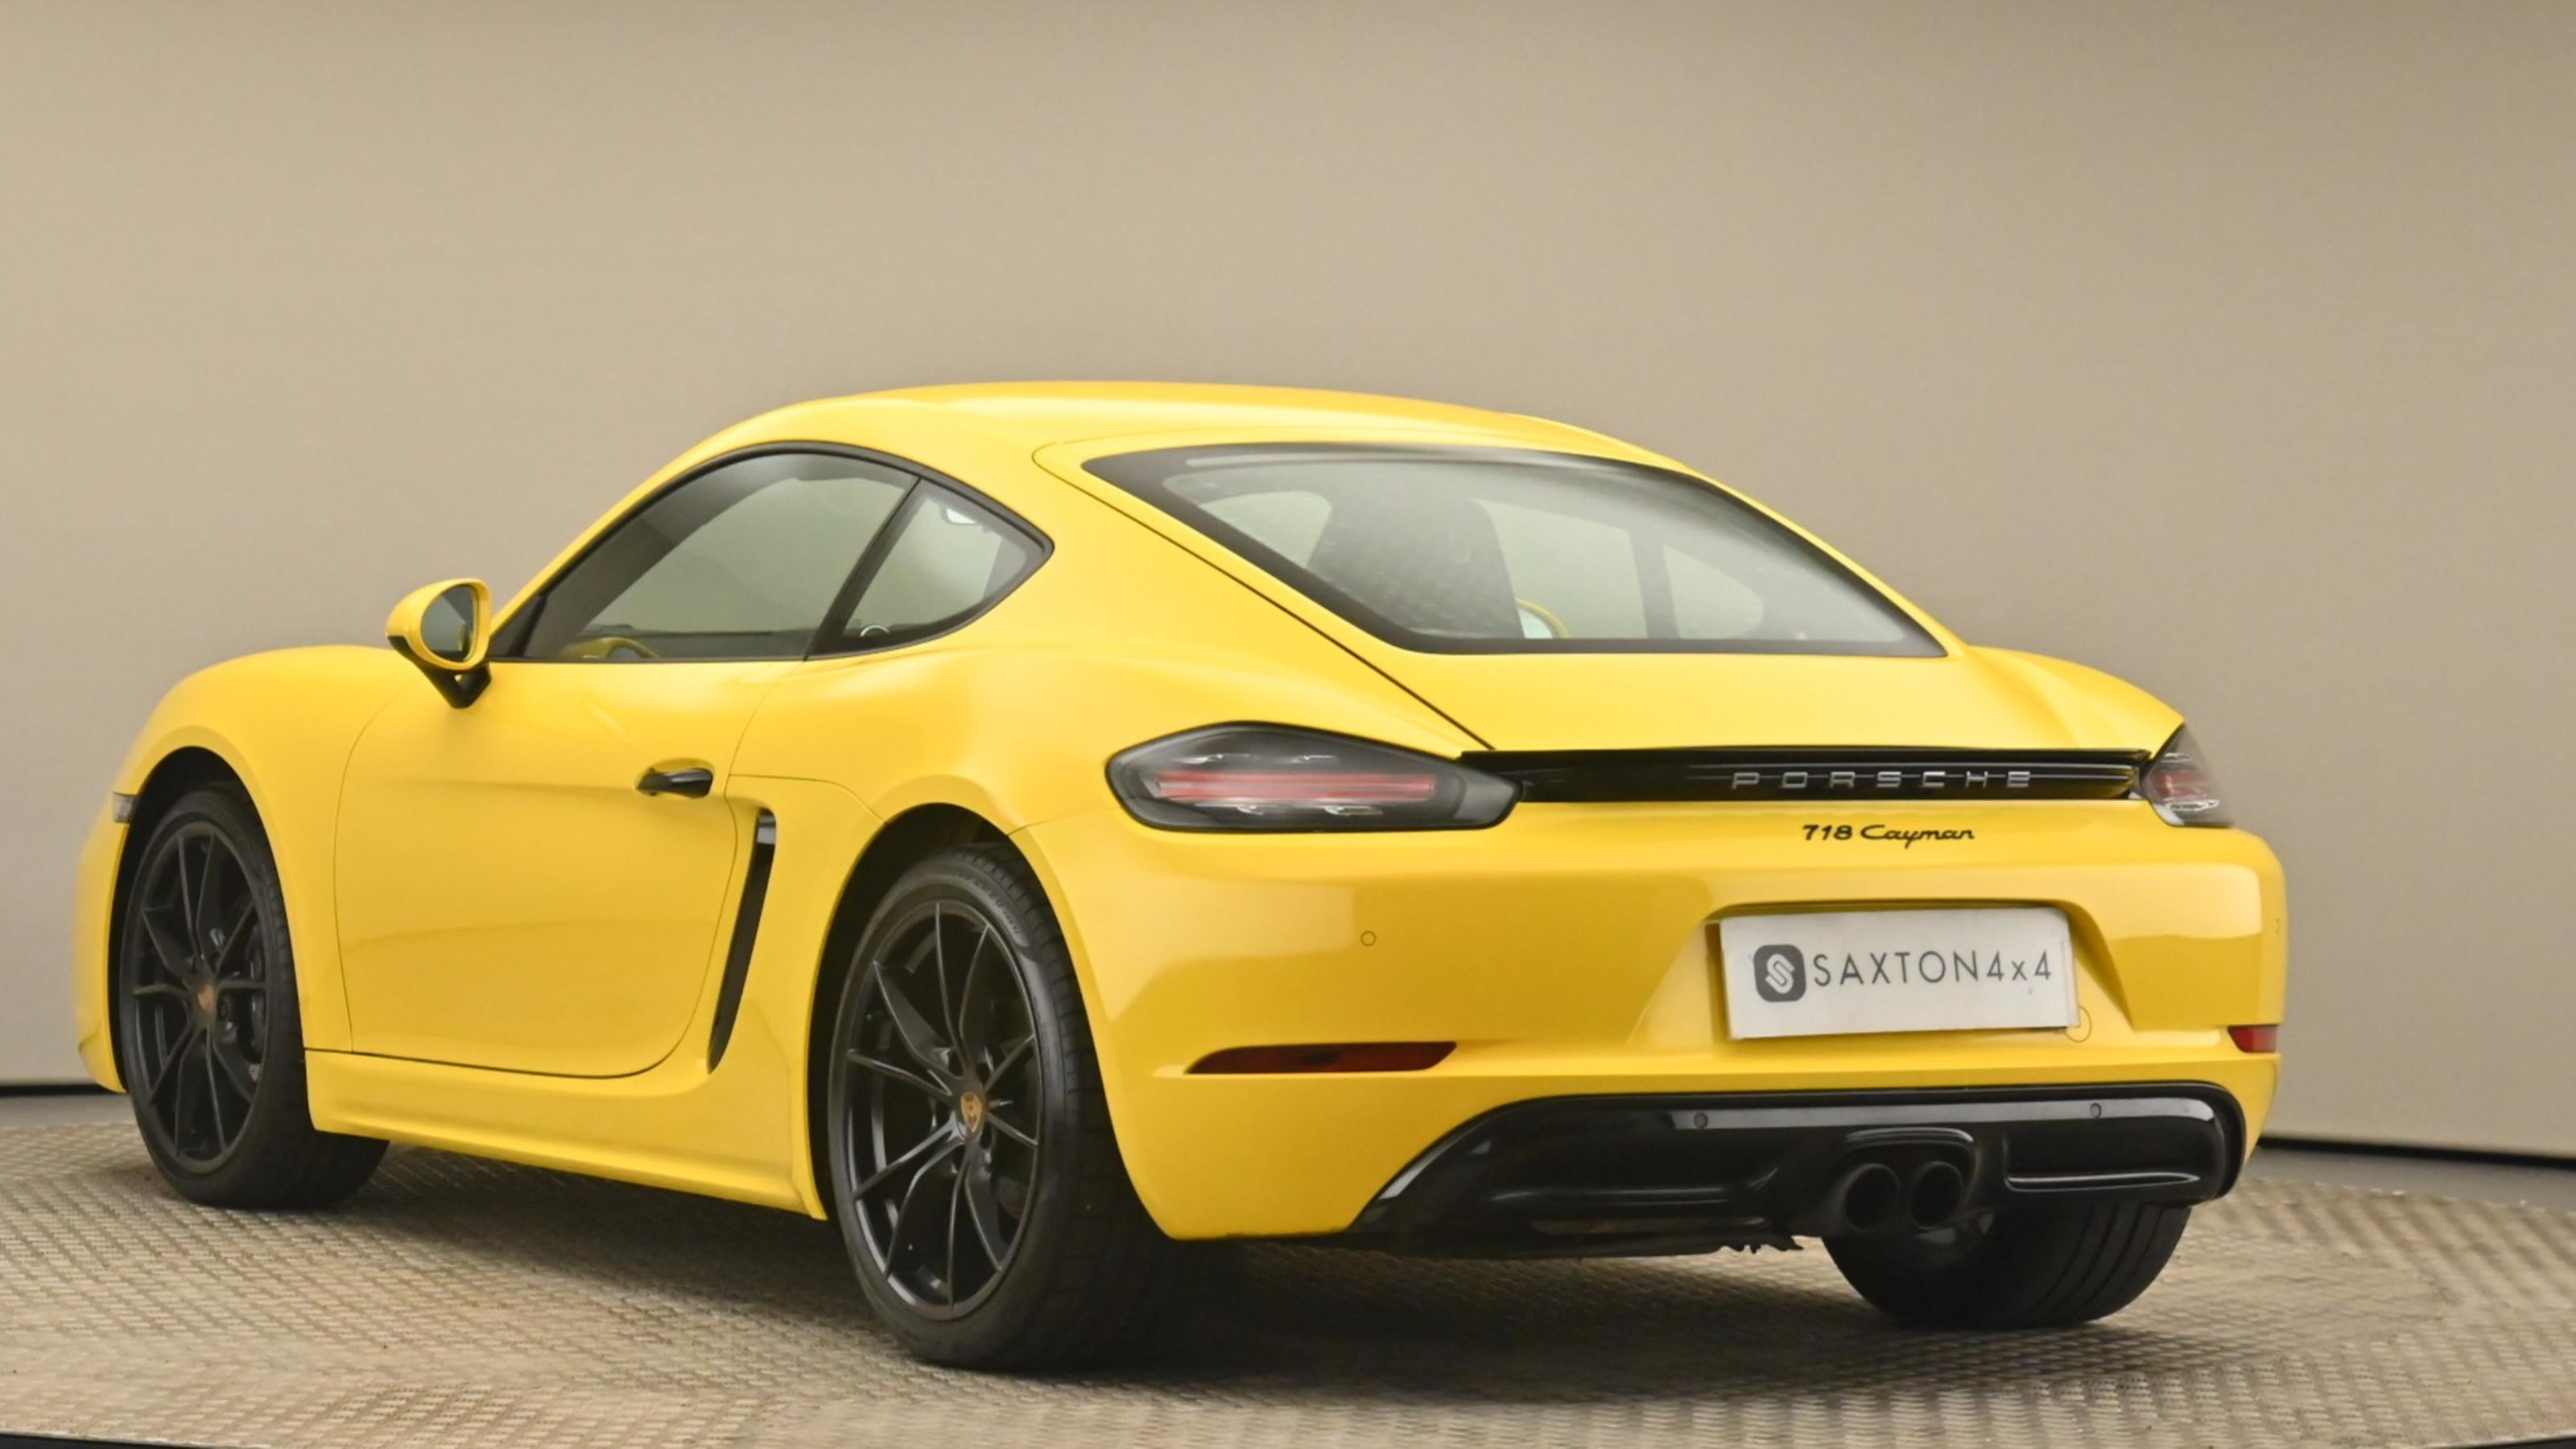 Used 2018 Porsche CAYMAN 2.0 2dr YELLOW at Saxton4x4